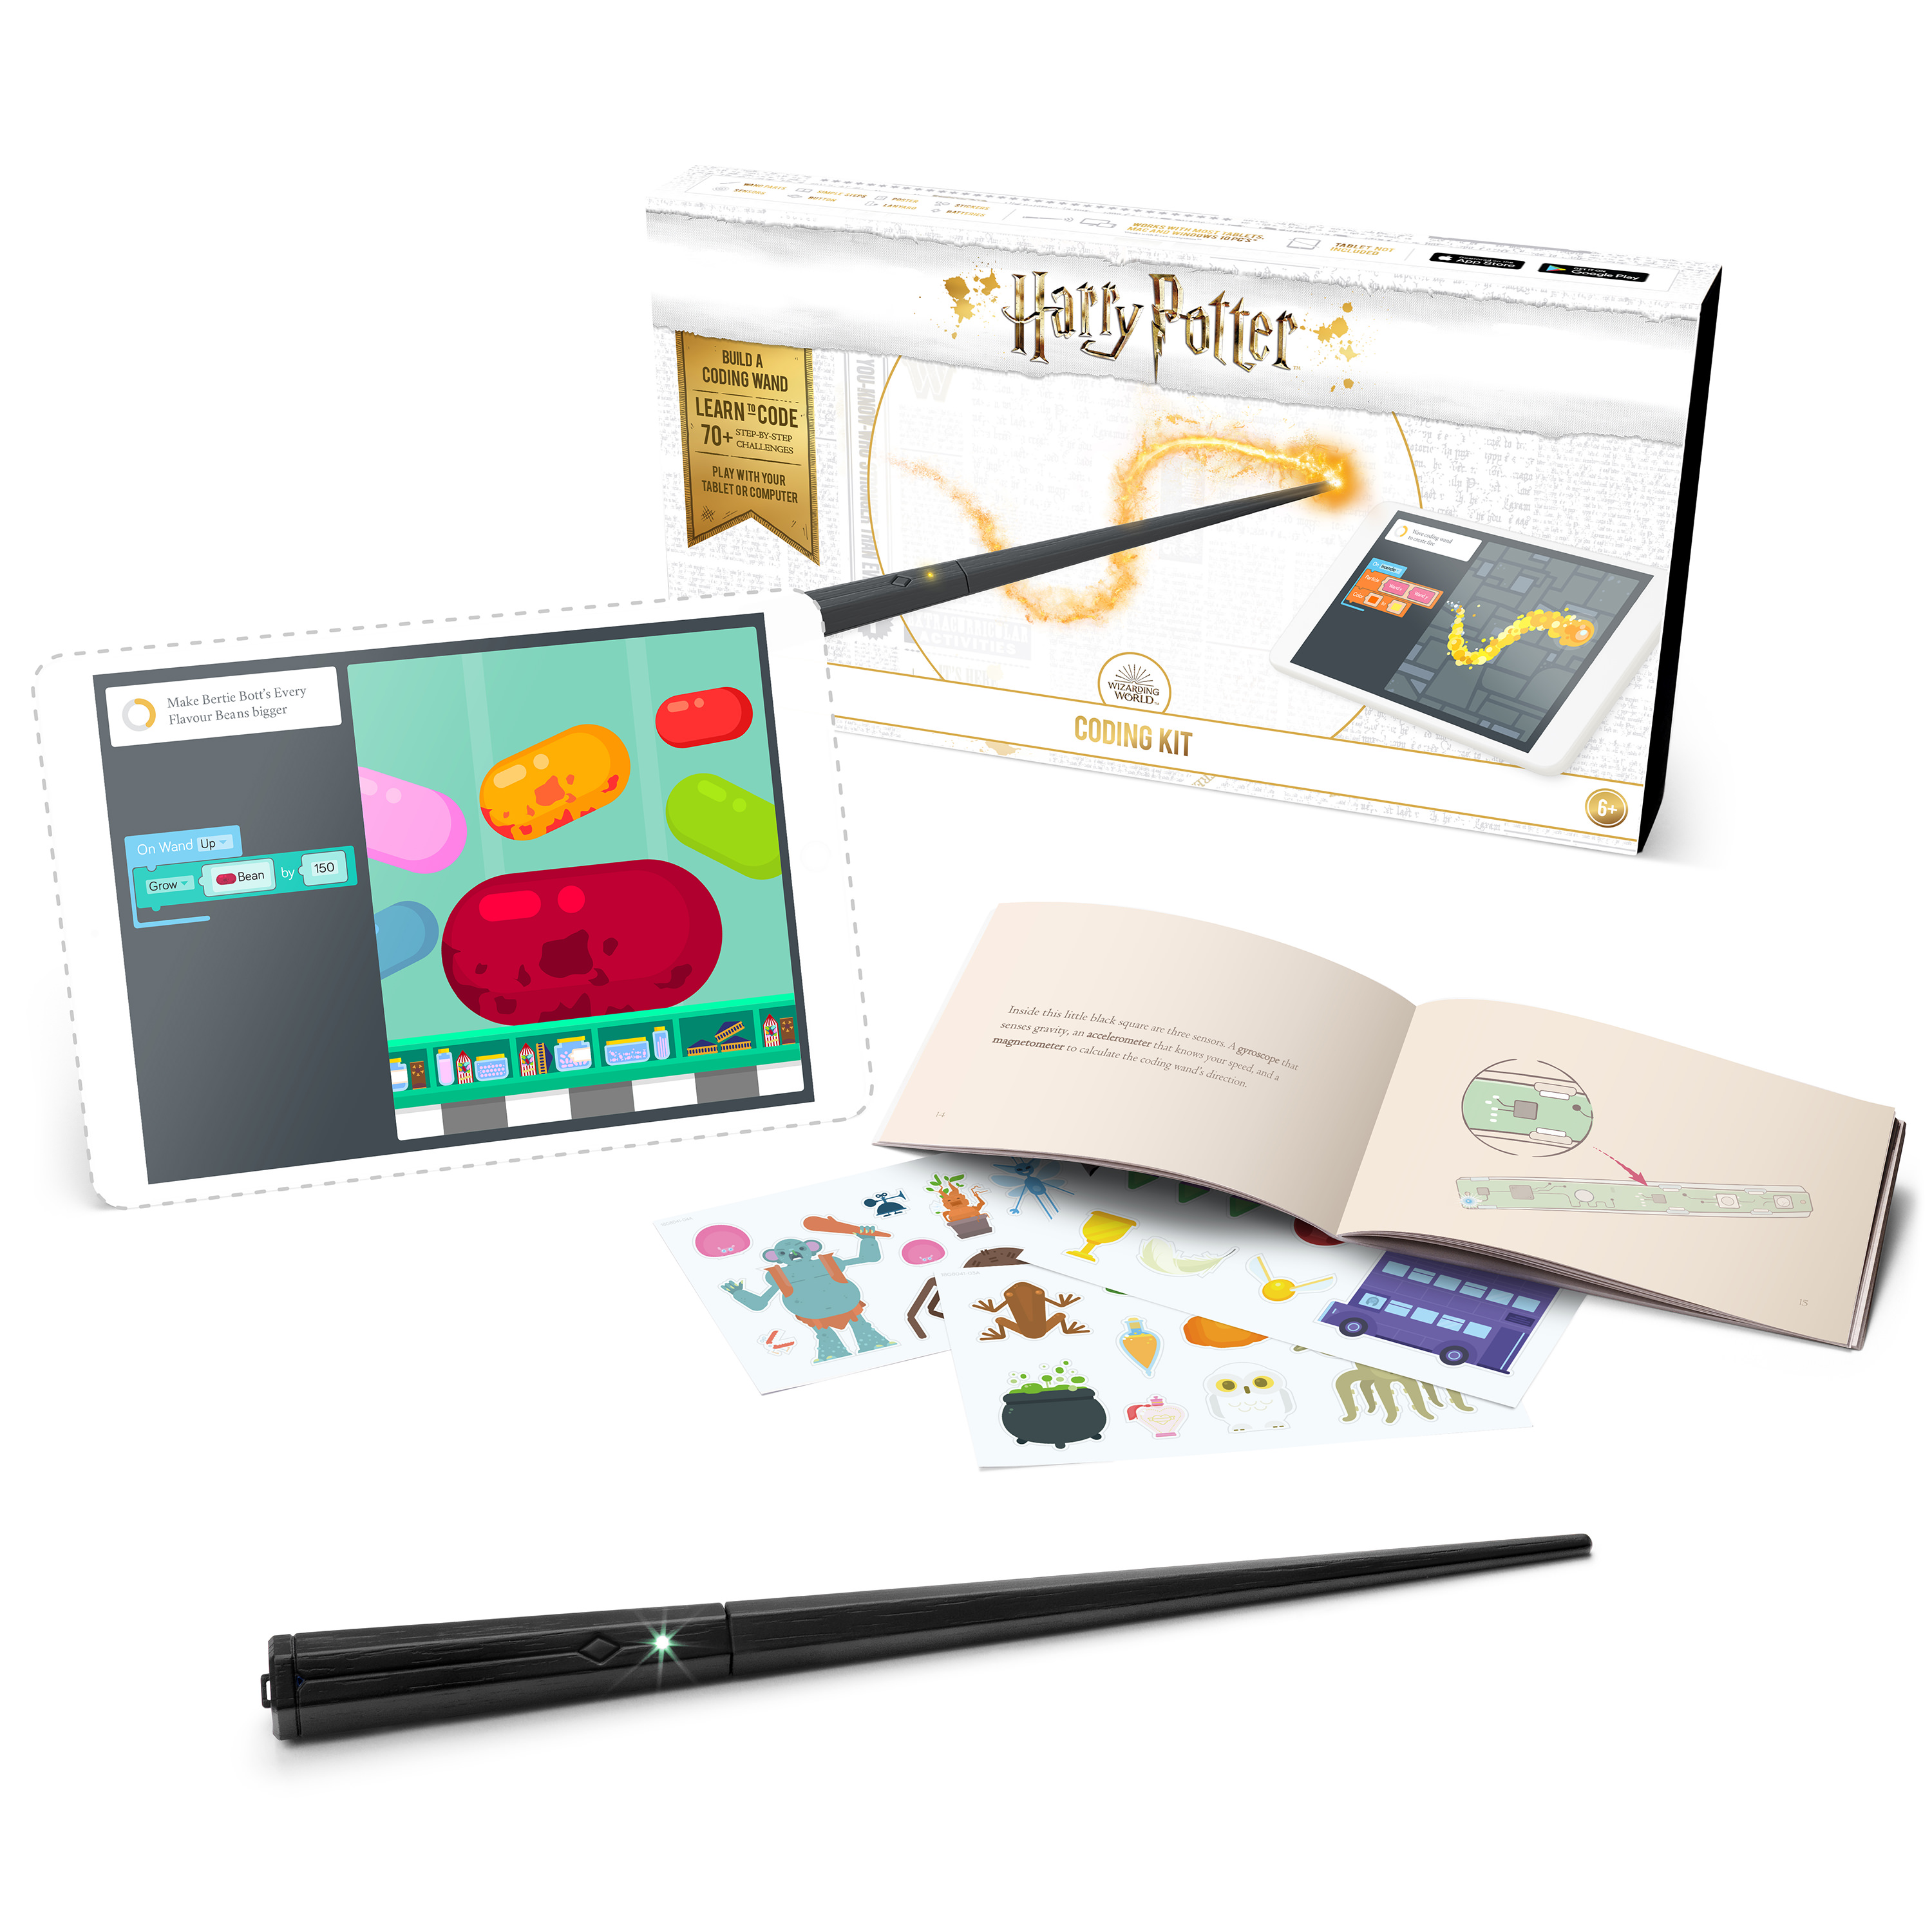 Harry Potter Kano Coding Kit � Build a wand. Learn to code. Make Magic by Kano Computing Ltd